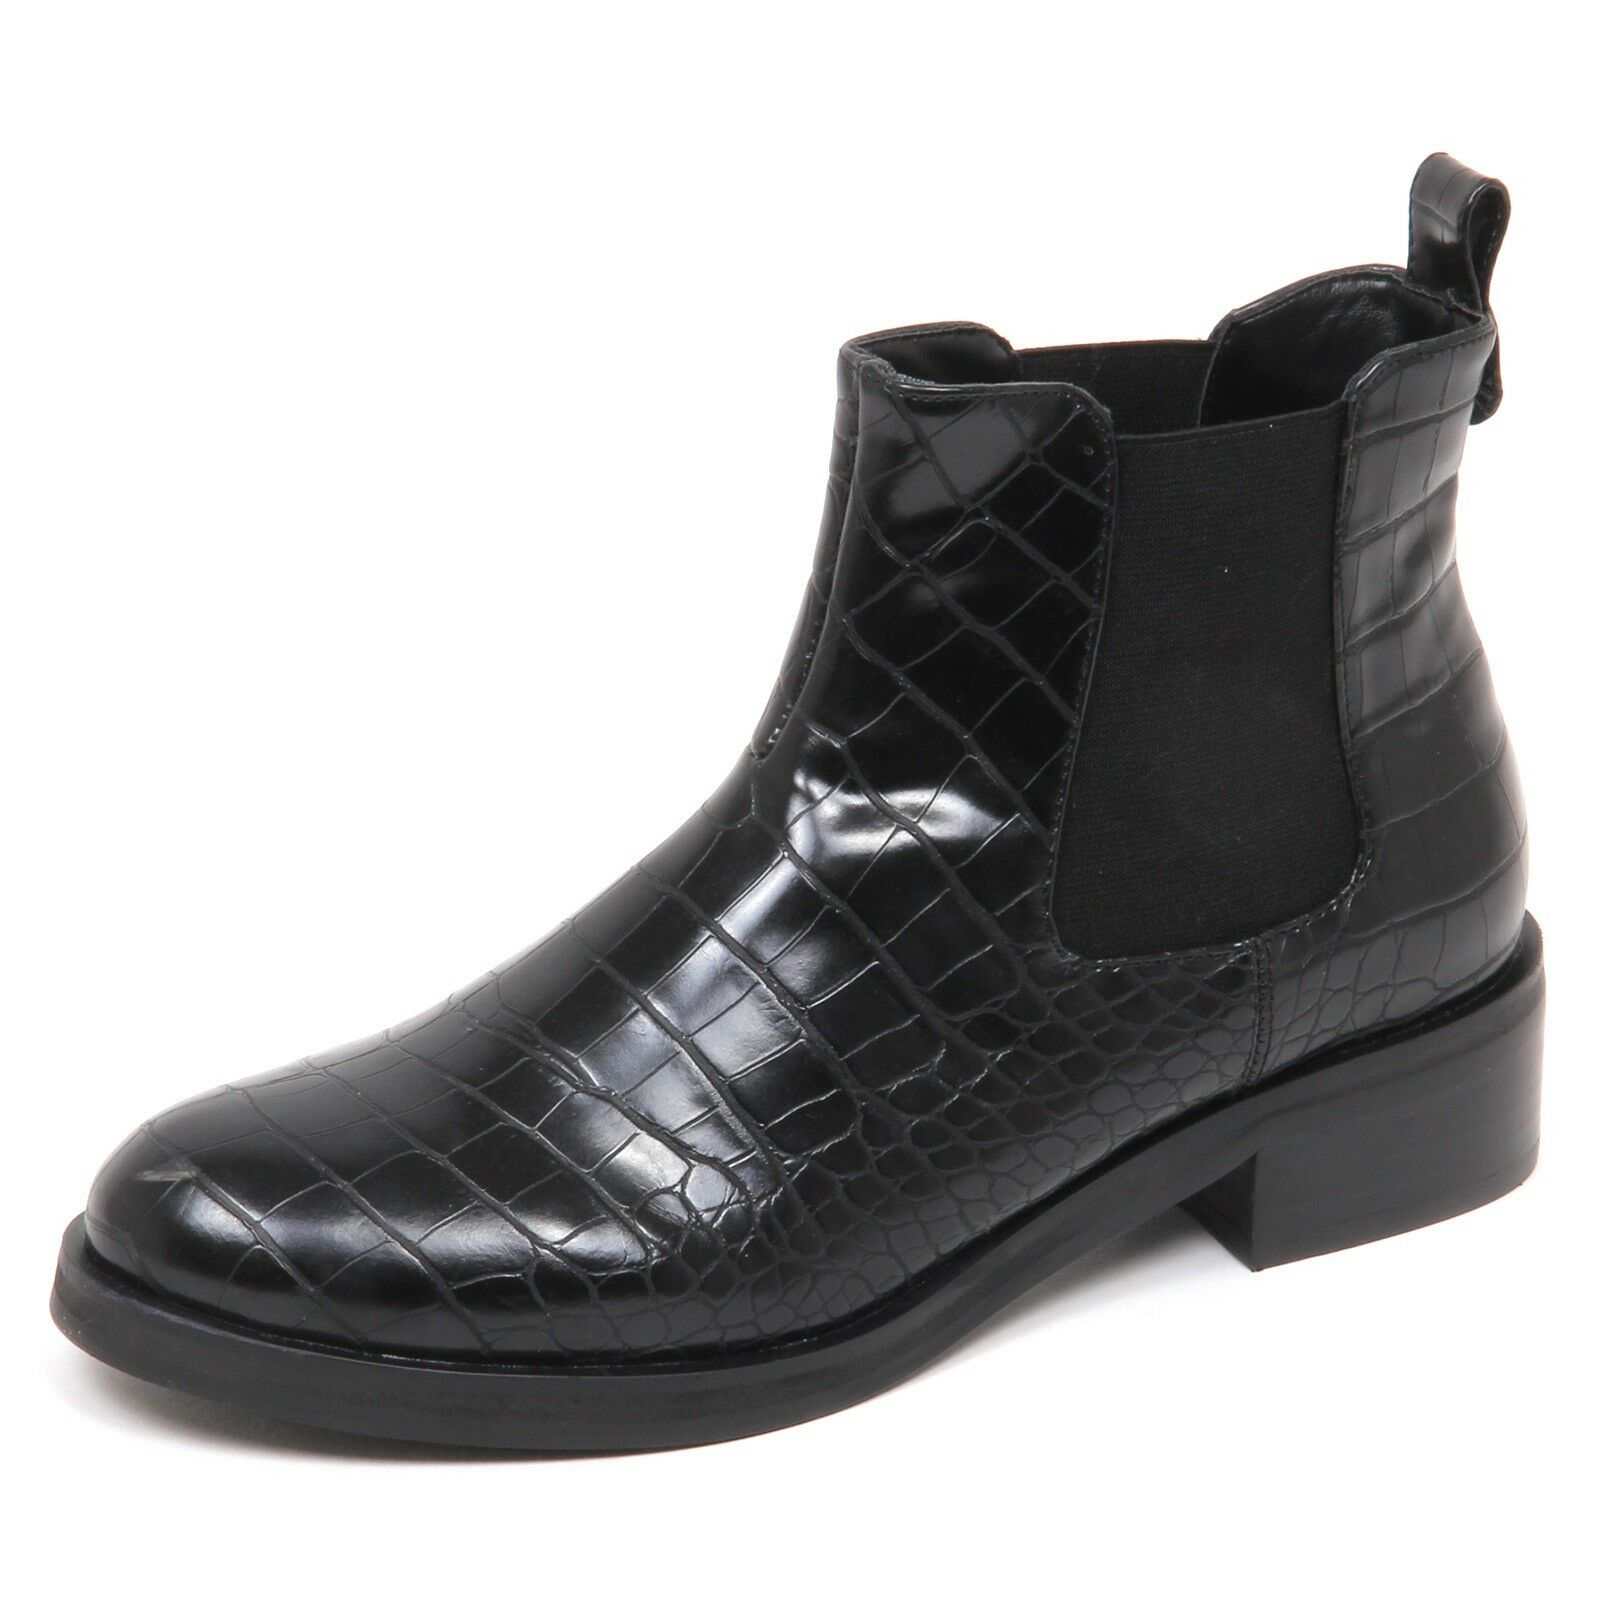 E5306 Beatles mujer negro salamandra 'zapatos eco Leather zapatos Woman